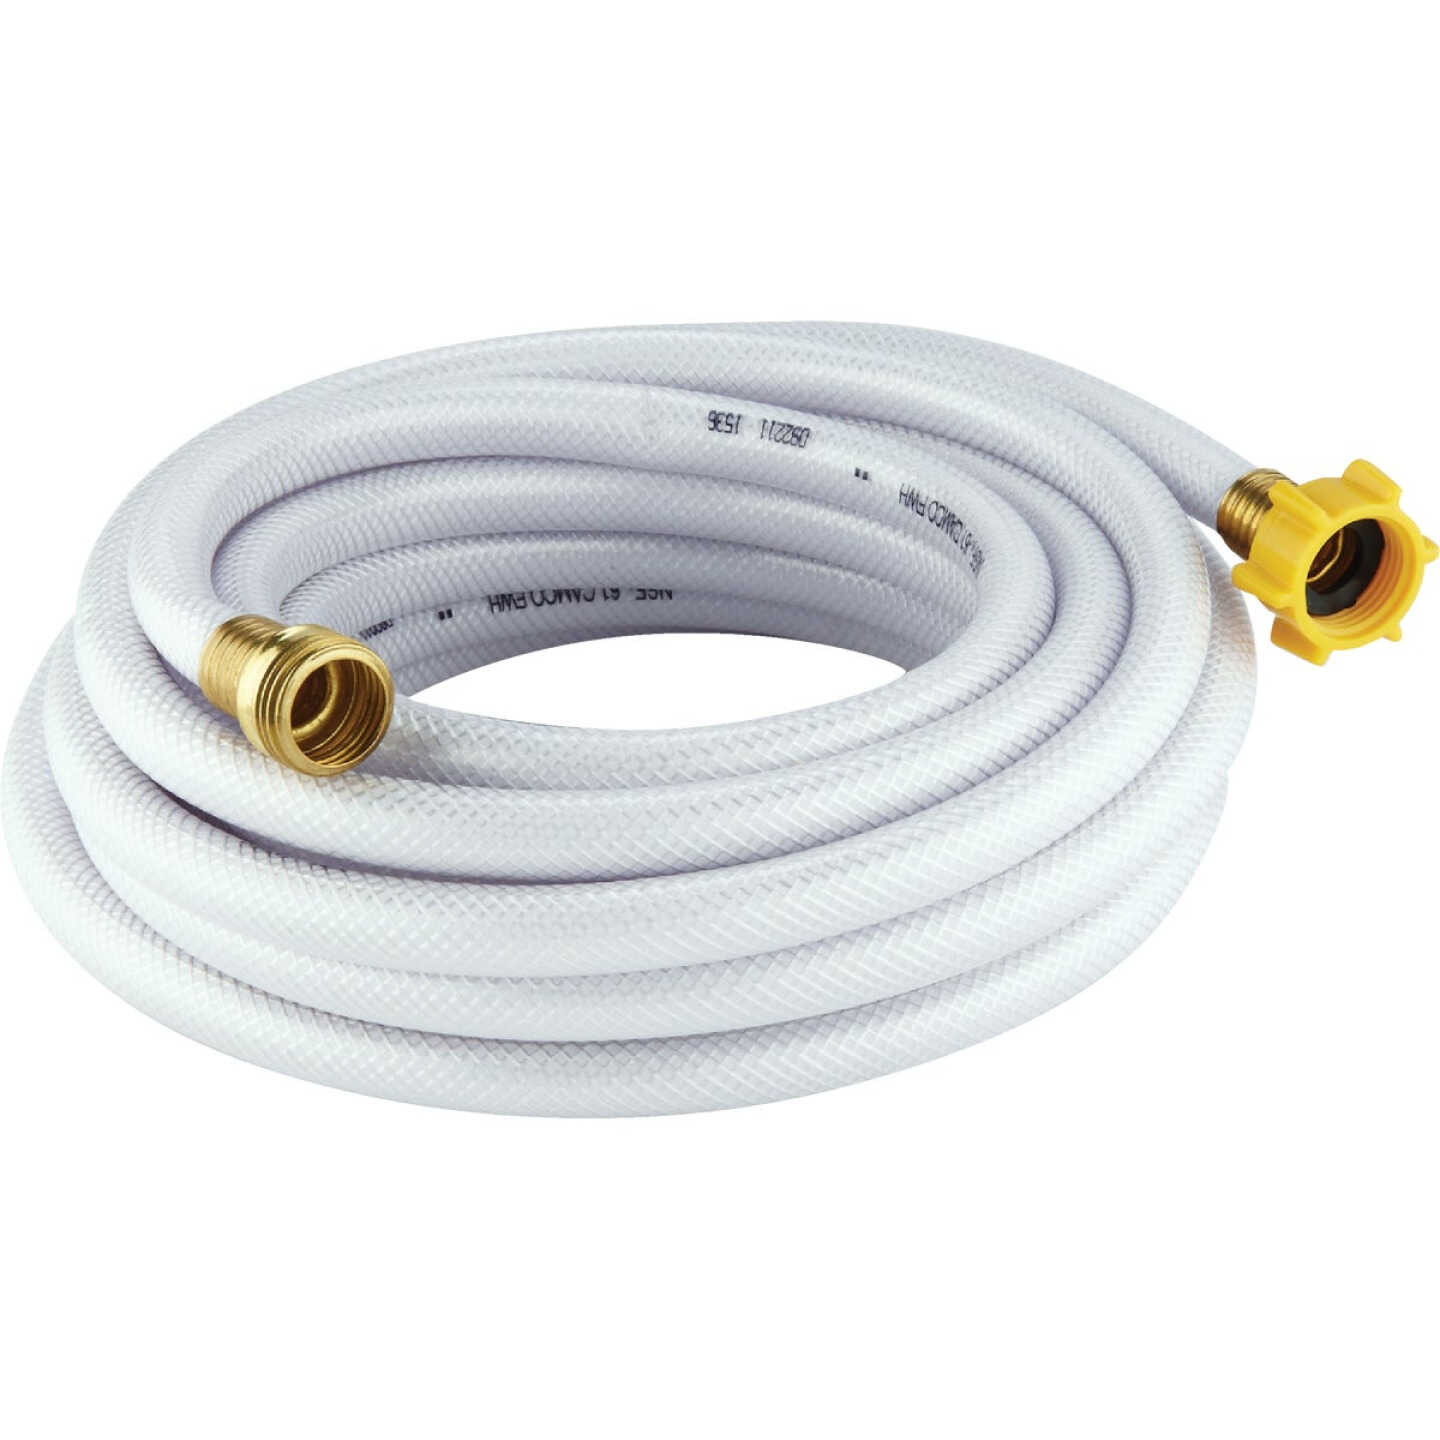 Camco 25 Ft. (1/2 In. ID) RV Fresh Water Hose Image 1